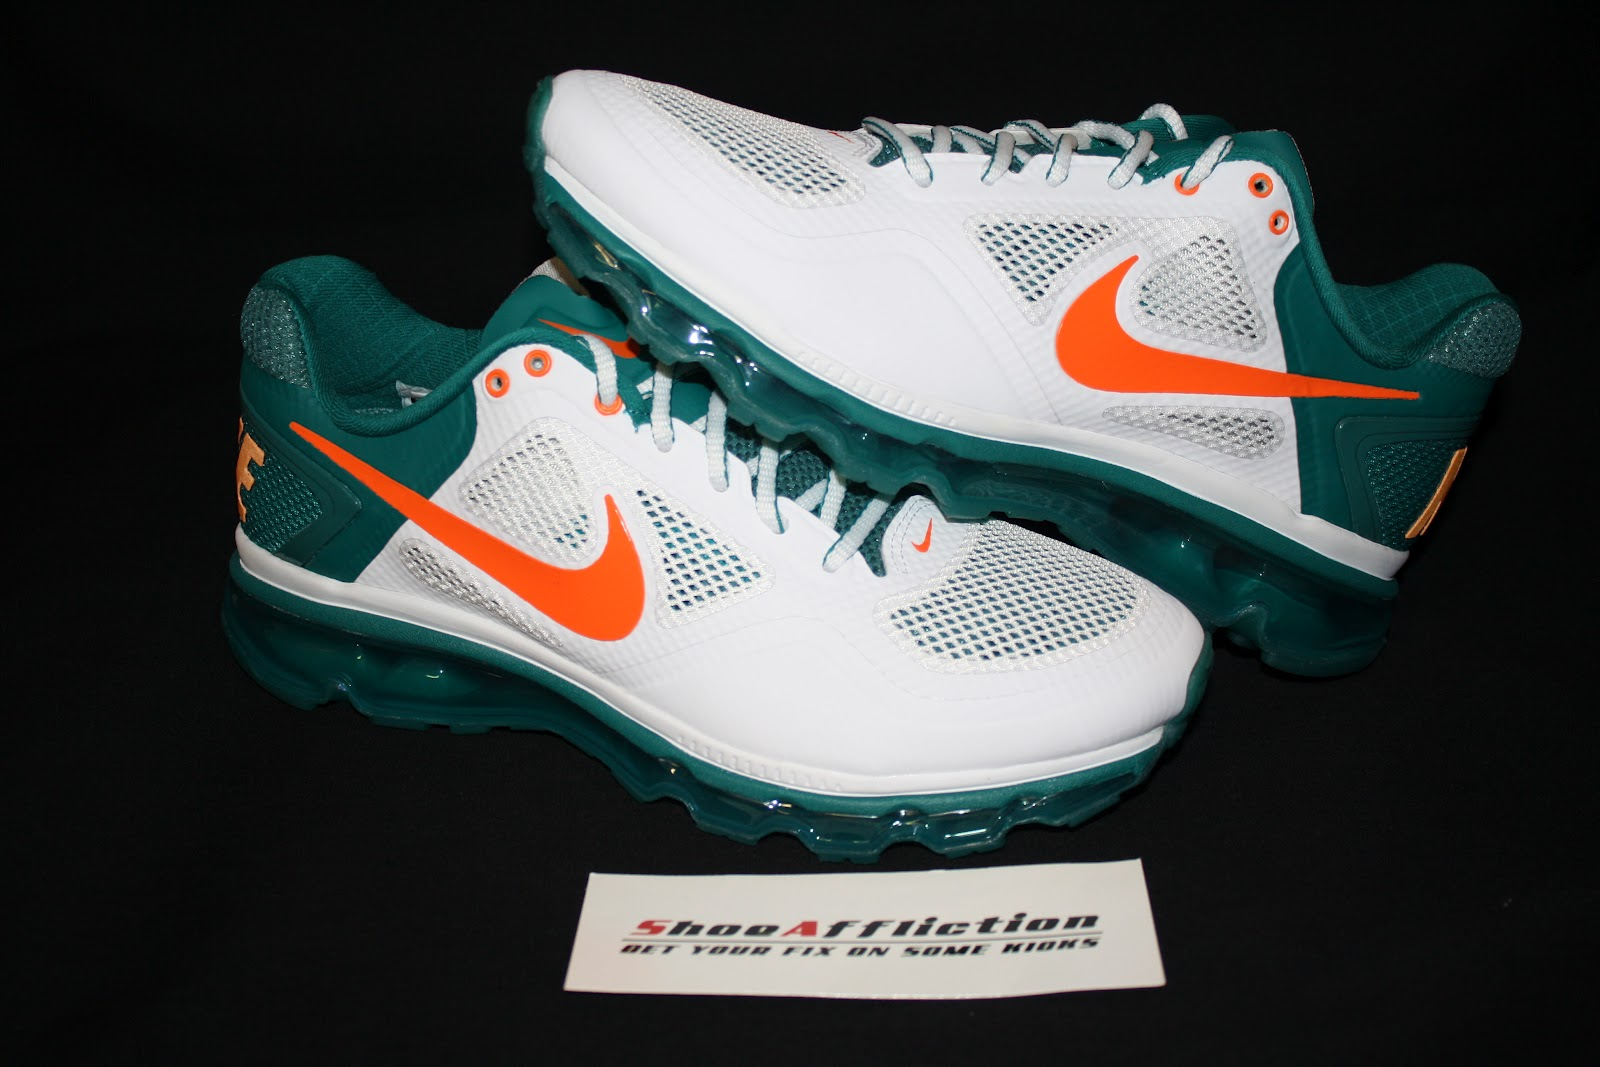 b5aea9443d Nike Trainer 1.3 Max Breathe 2012 NFL Draft Day Pack